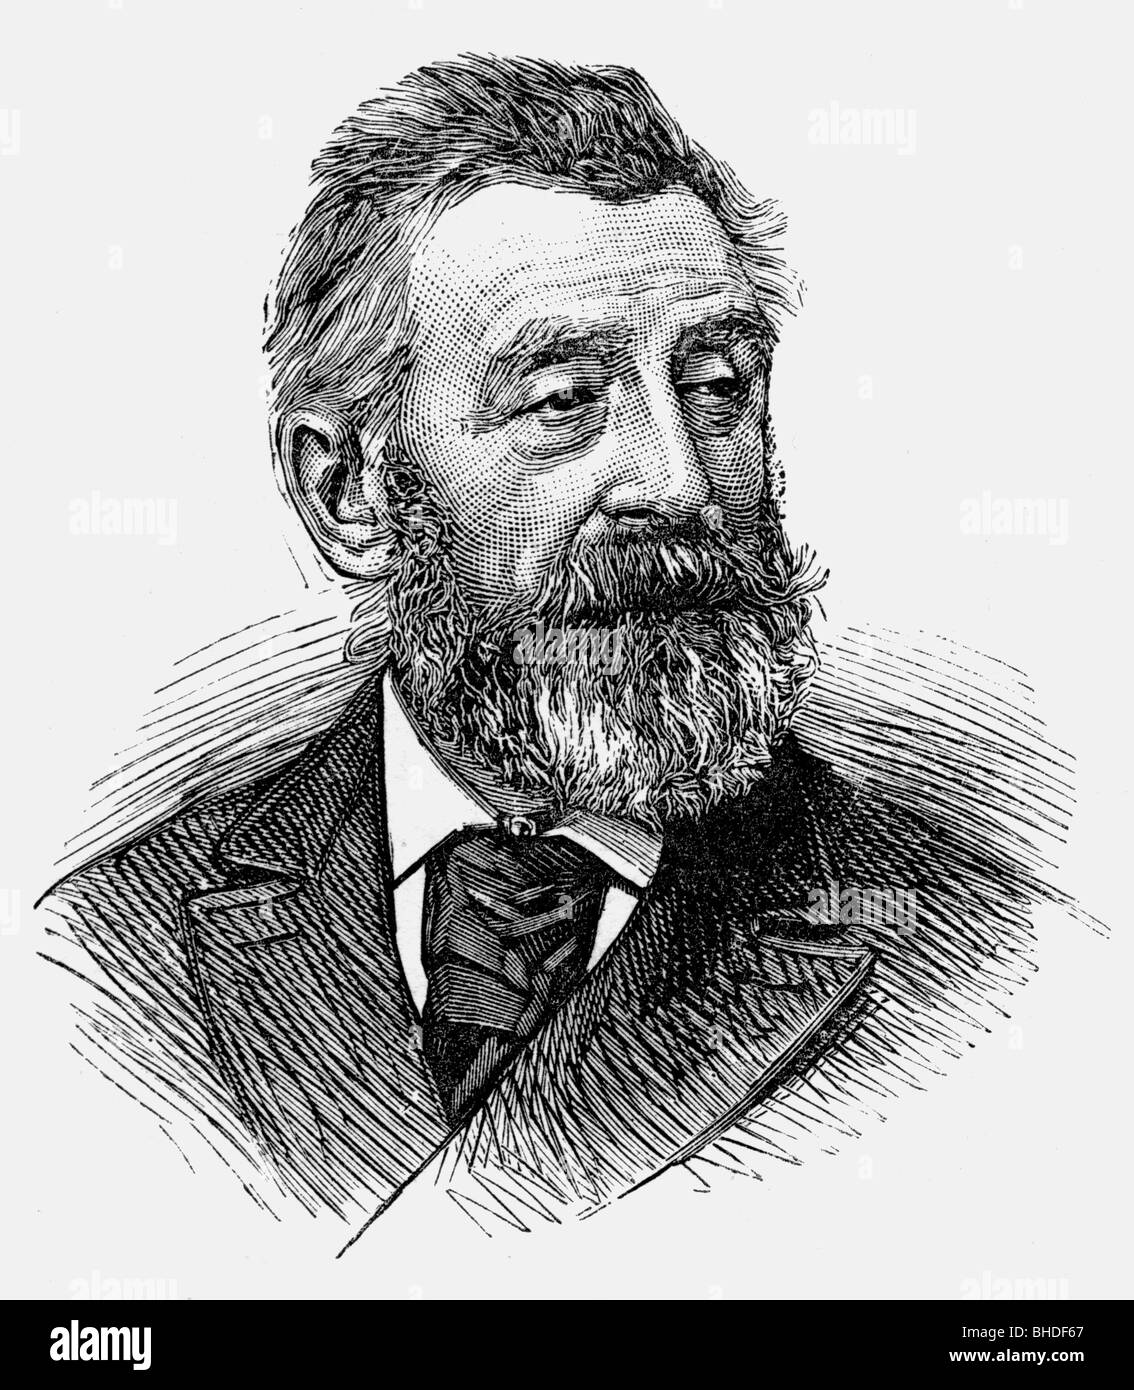 Harpignies, Henry, 28.7.1819 - 28.8.1916, French painter, portrait, wood engraving, Additional-Rights-Clearances - Stock Image